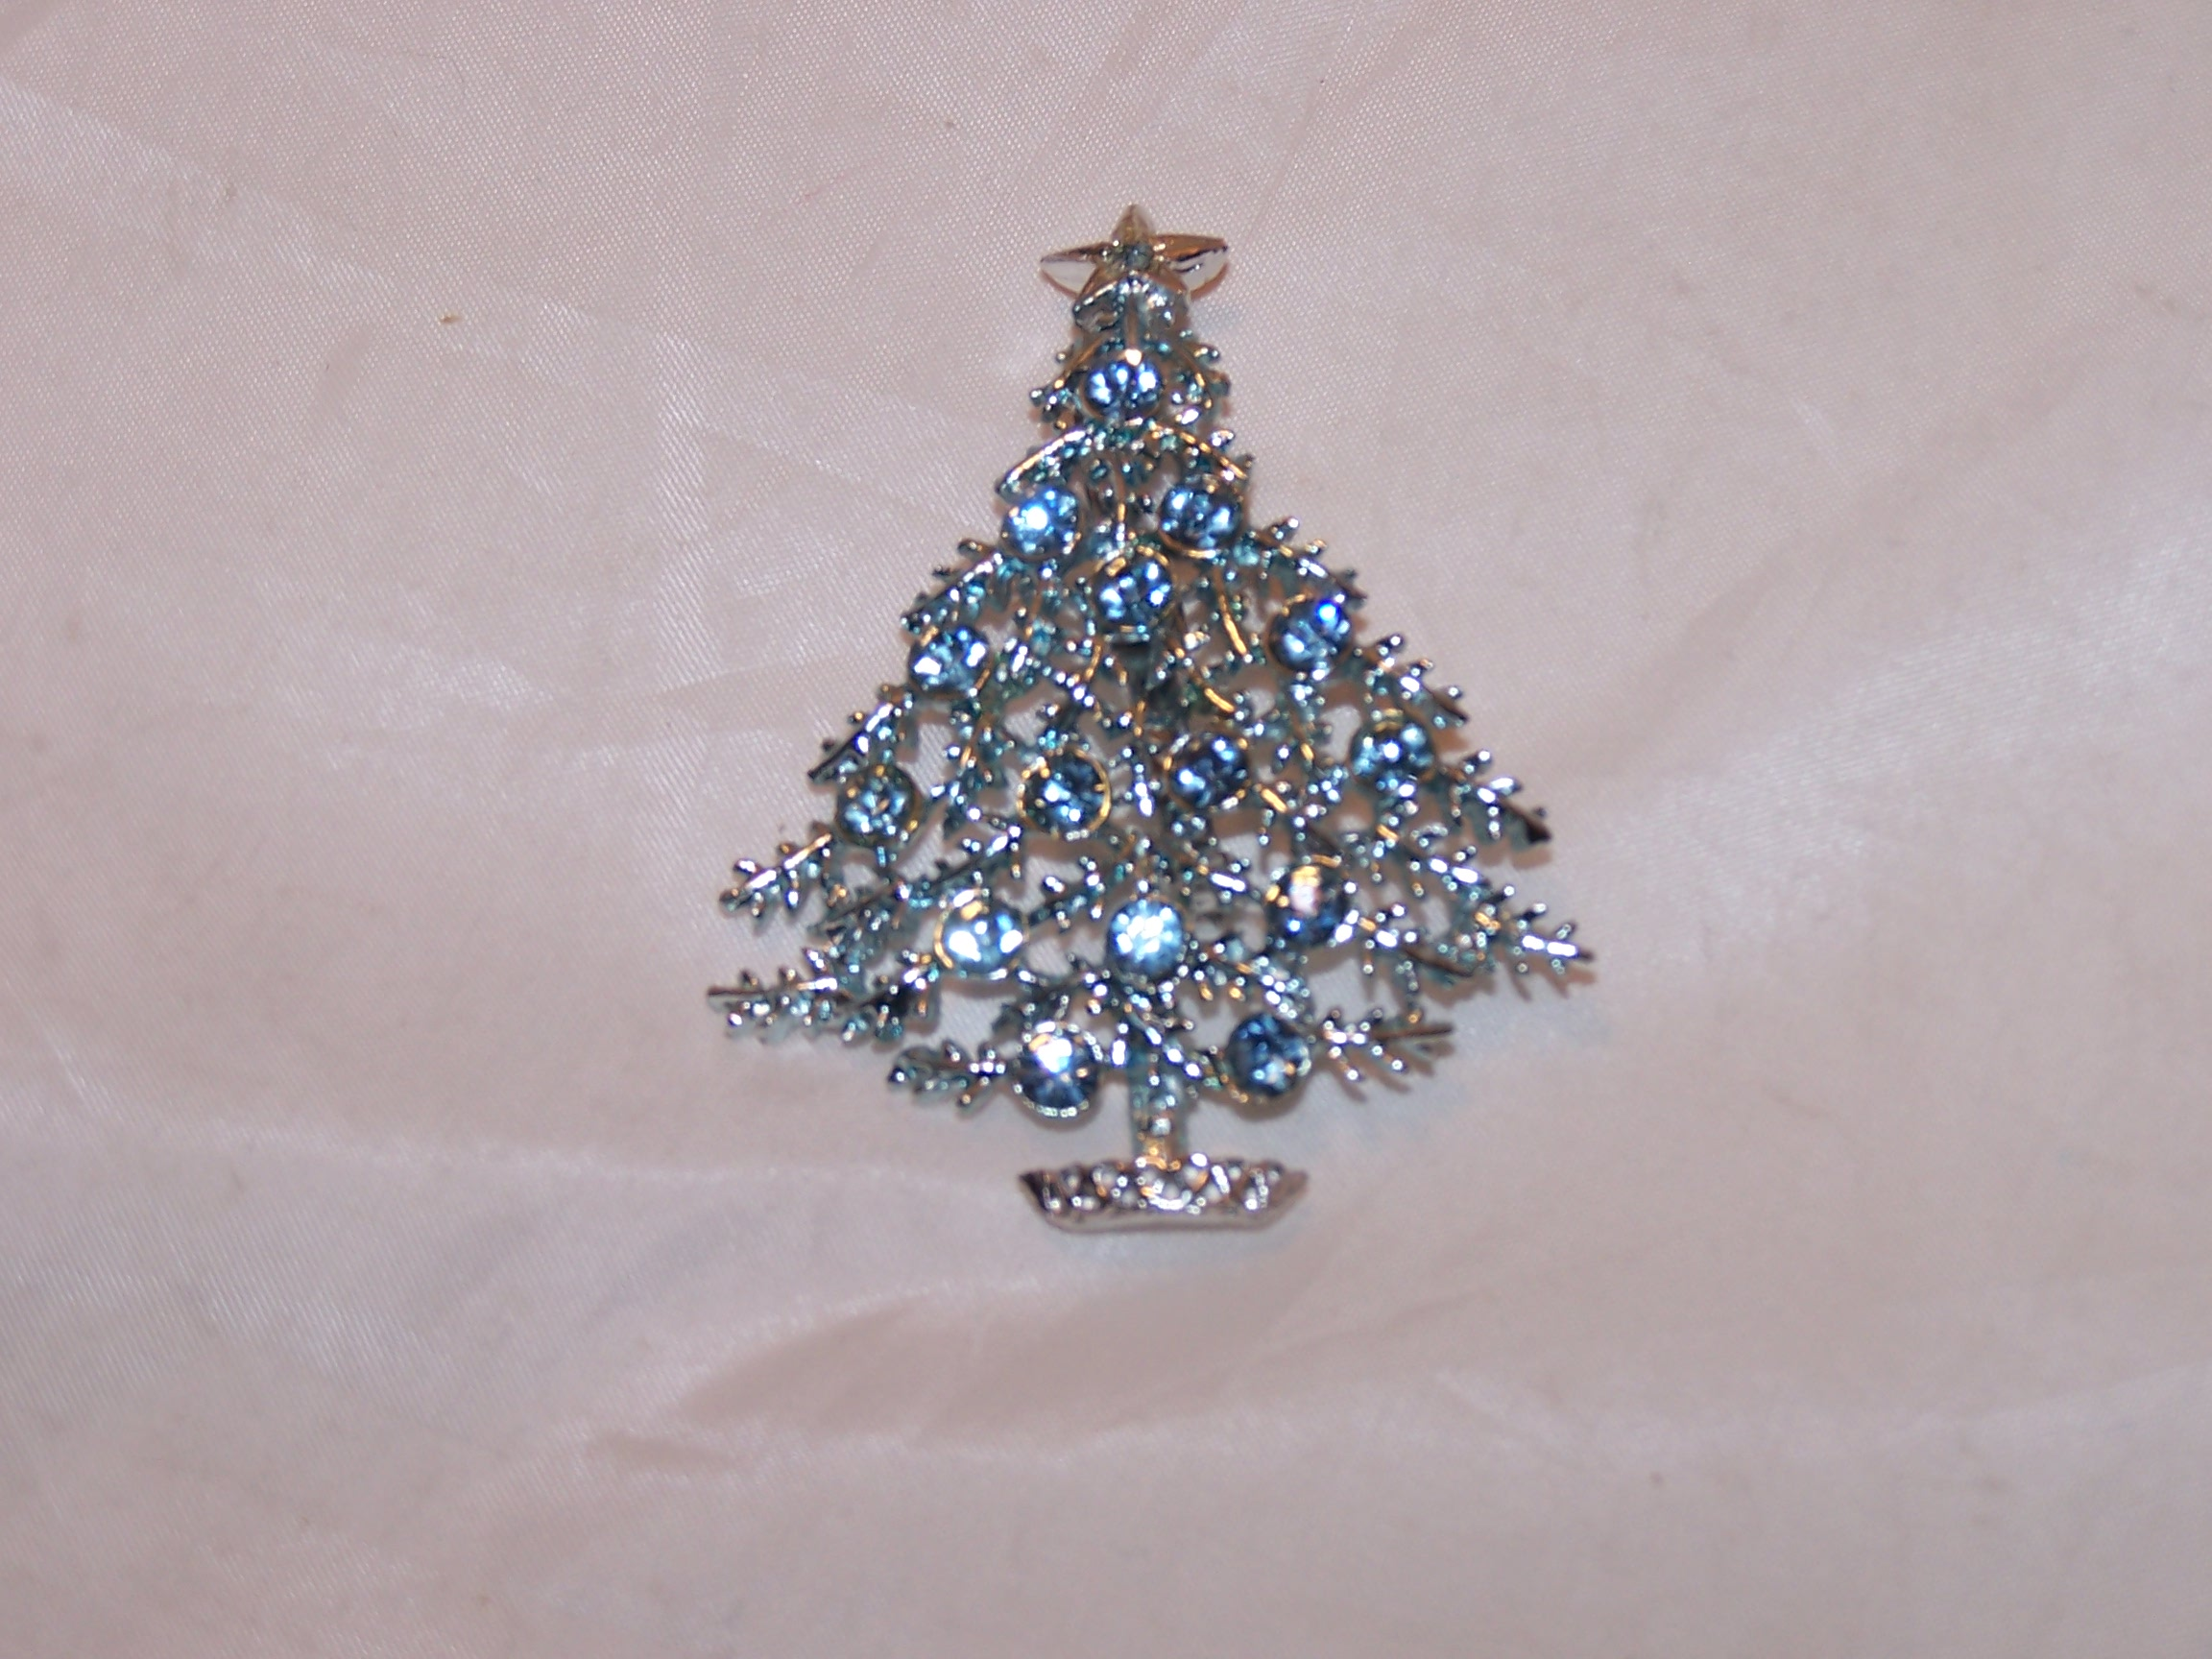 Image 1 of Christmas Tree, Blue and Silver, Pin Brooch